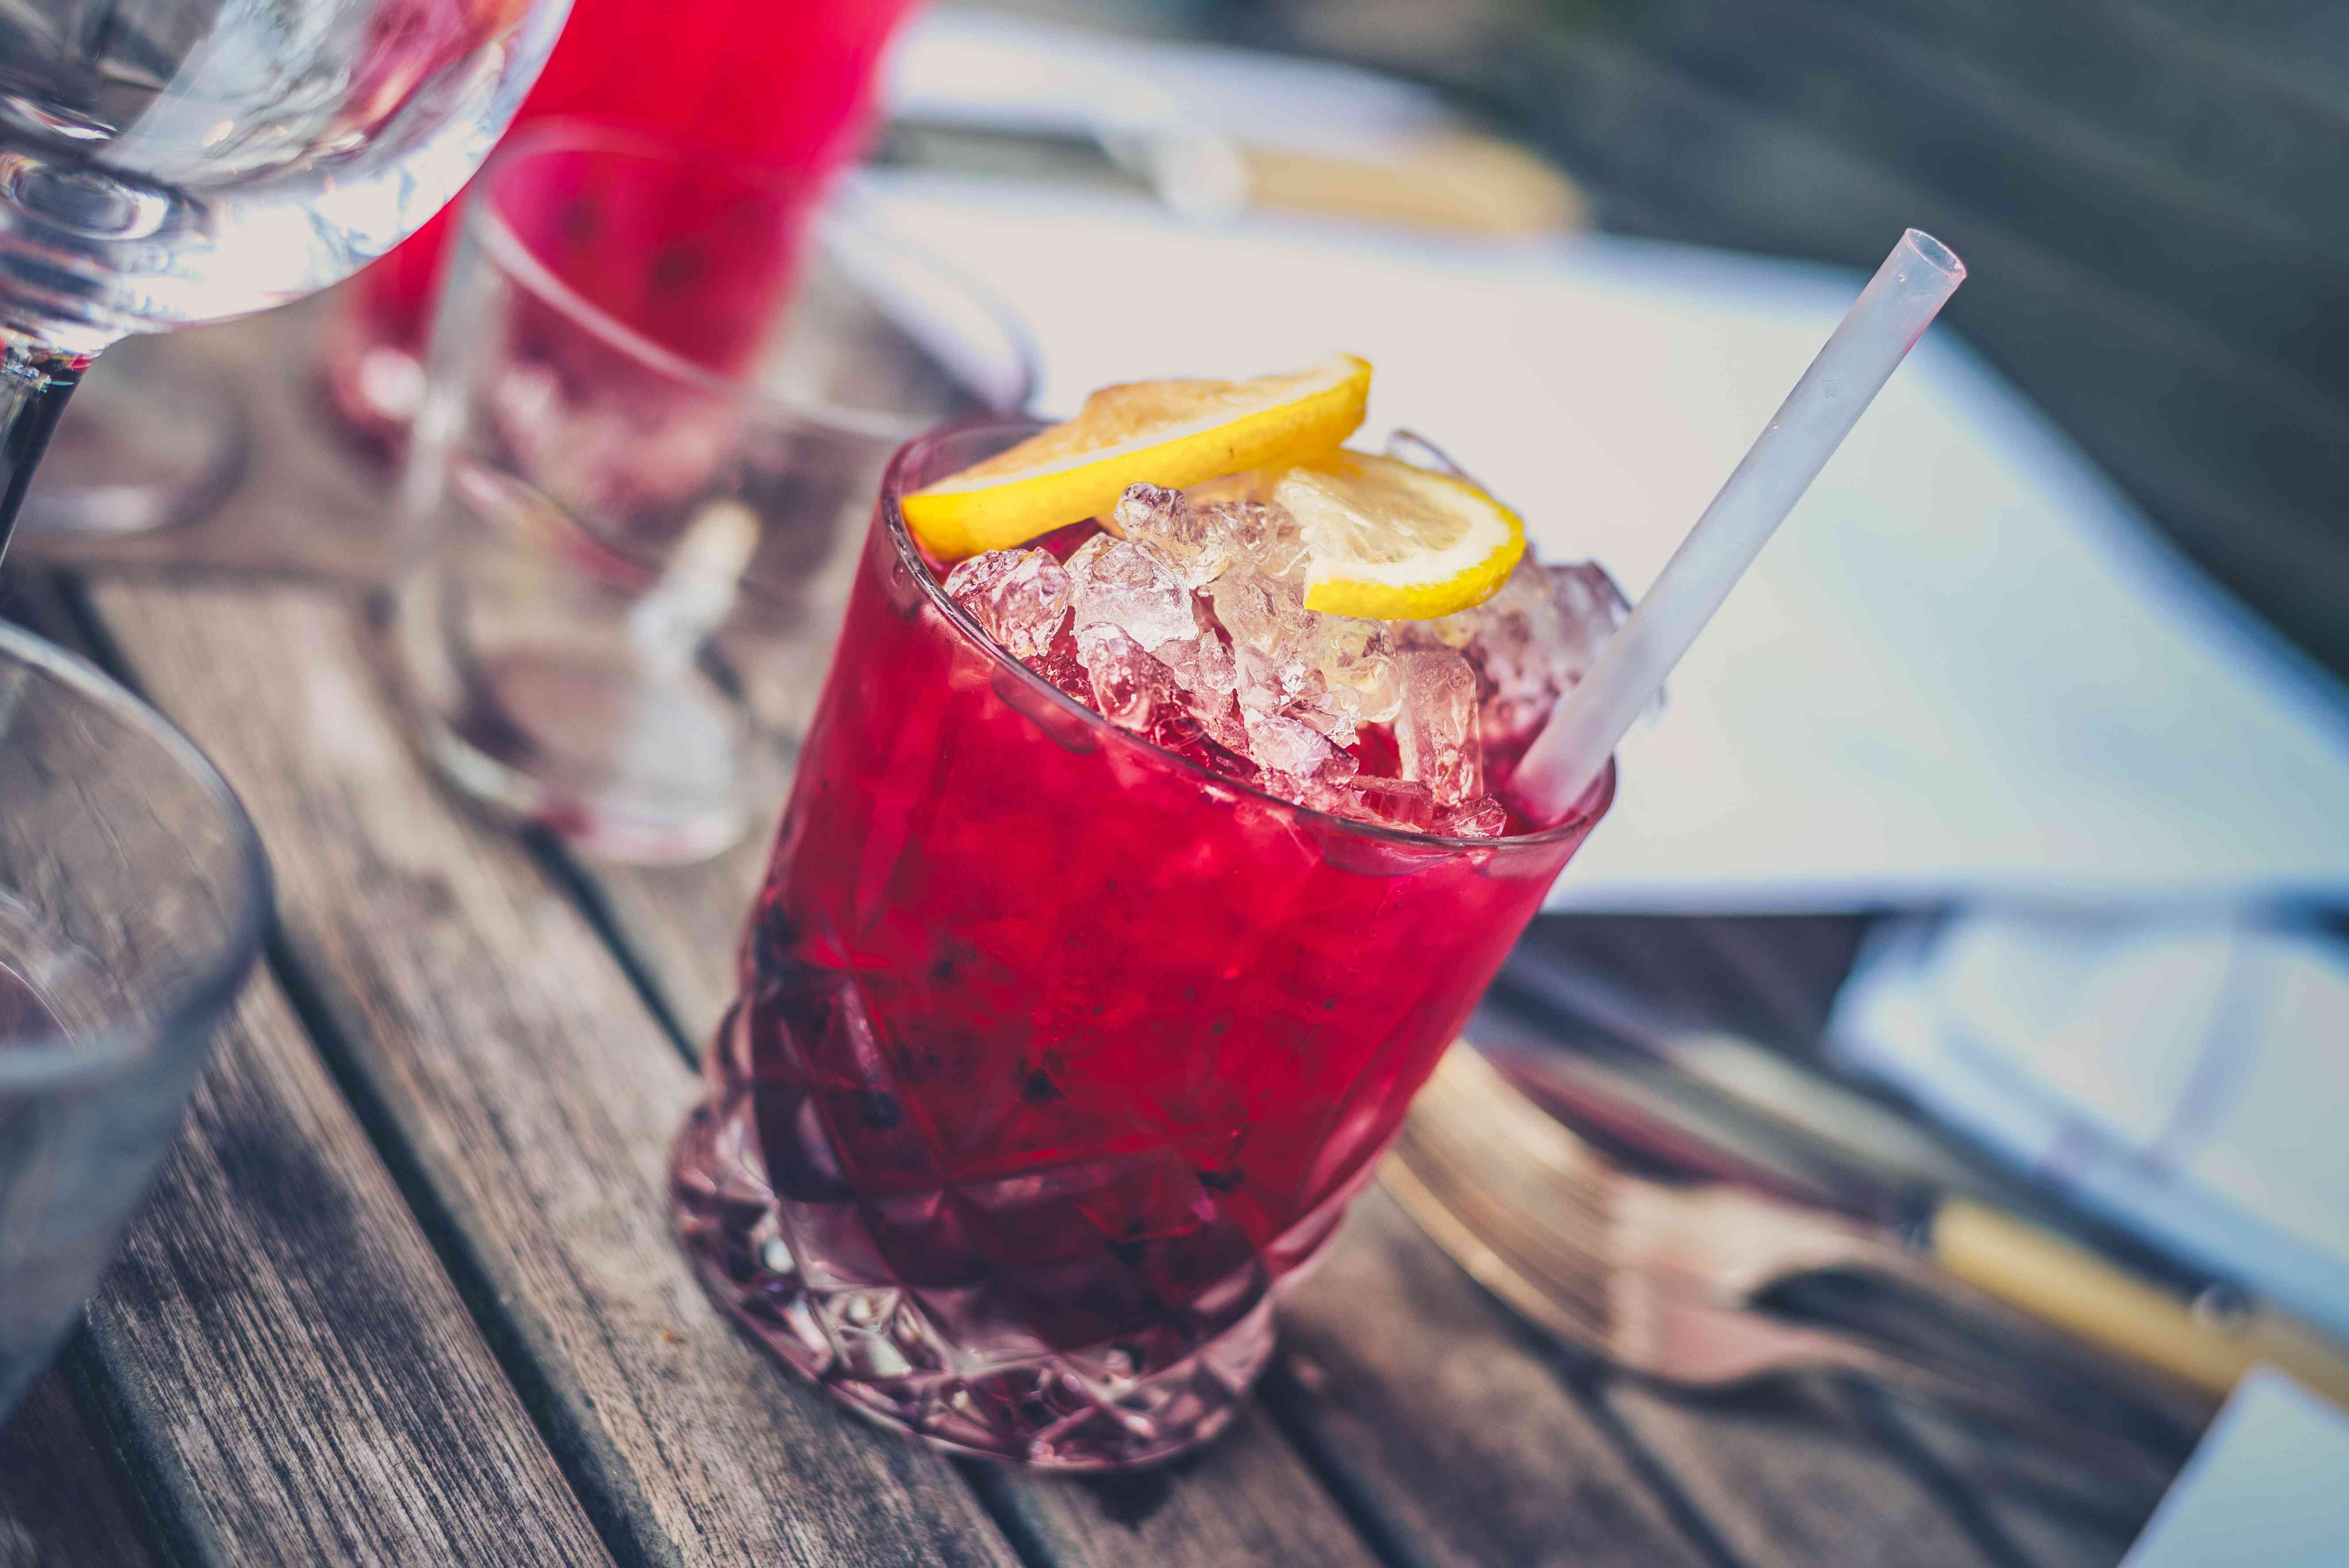 A glass of cranberry juice with ice, orange wedges, and a straw on a picnic table.